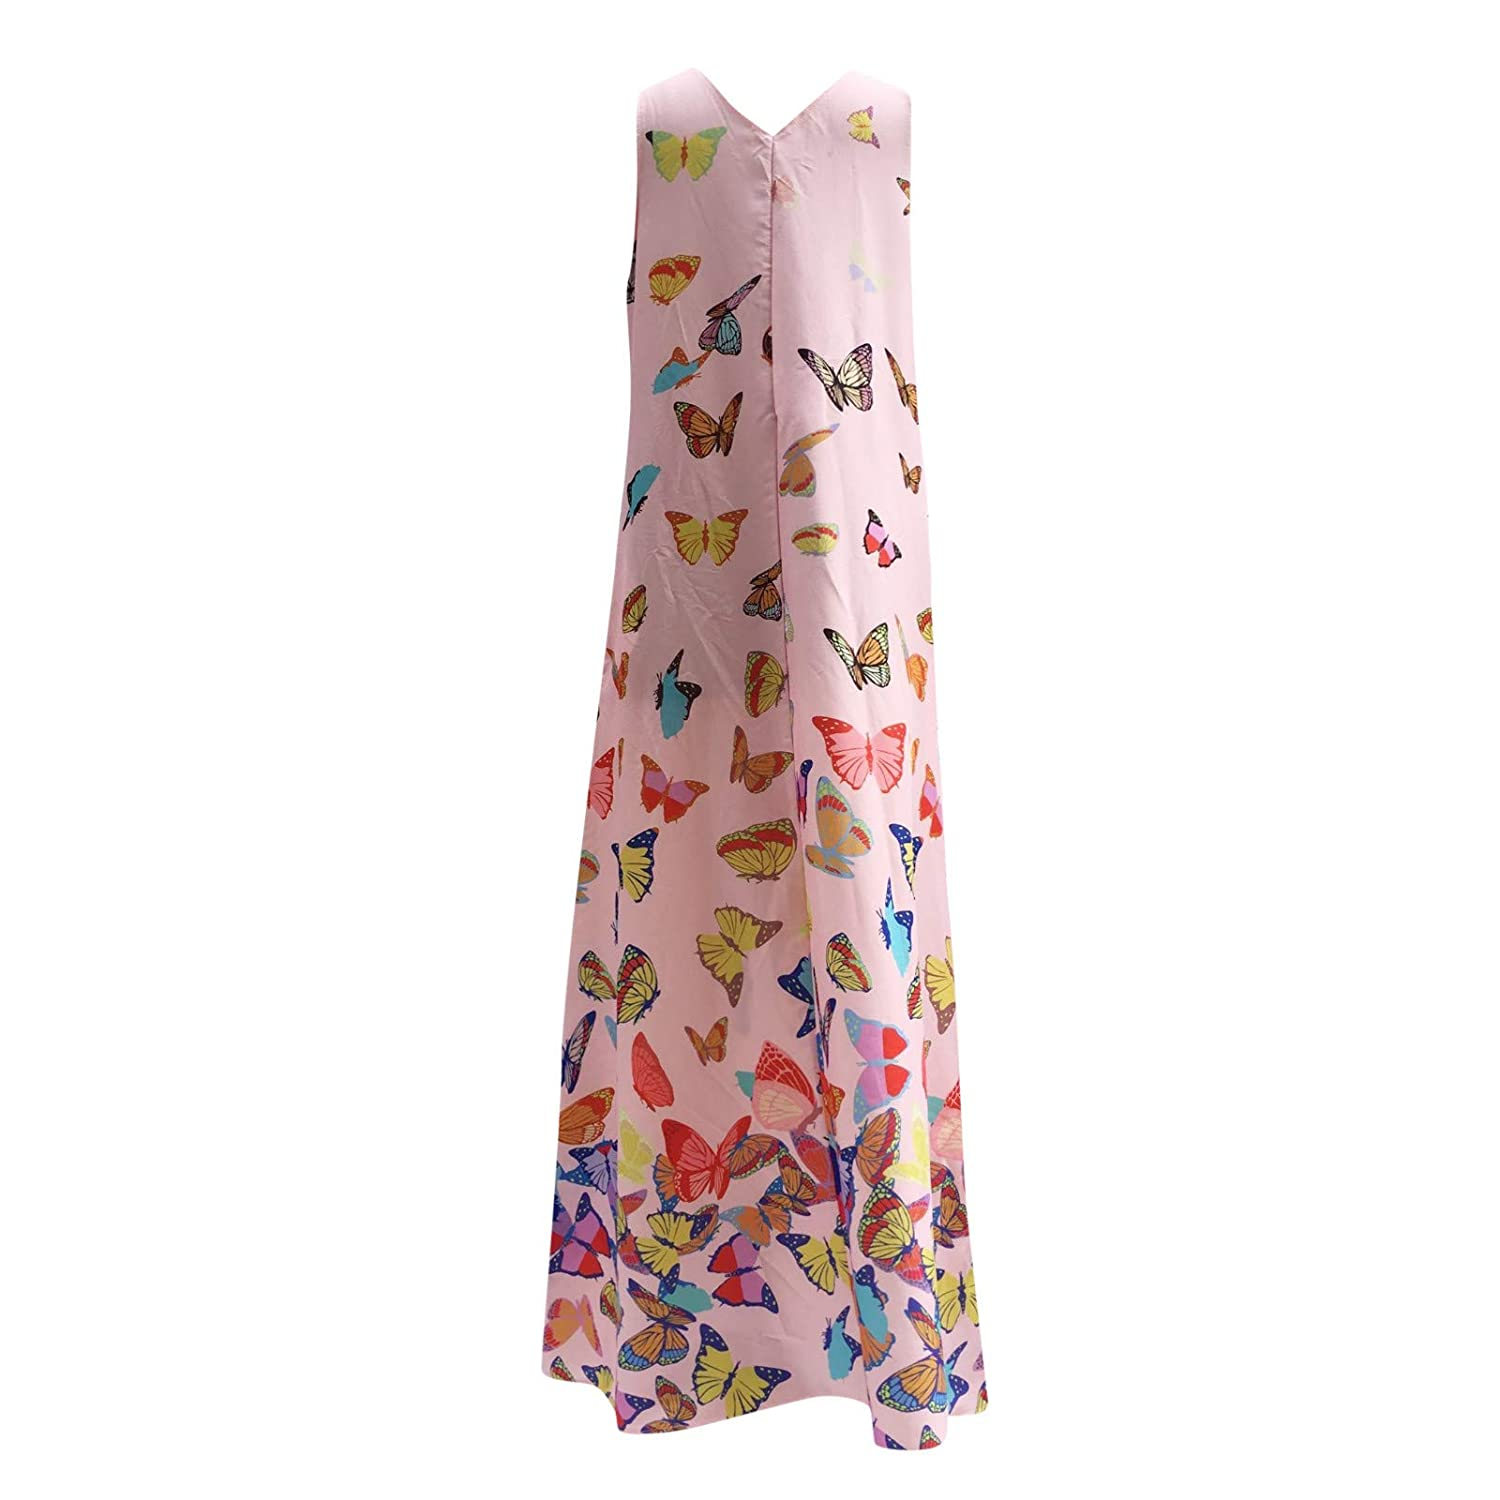 Women Print Dress Casual Big V-Neck Sleeveless Loose Long Dresses by Tootu